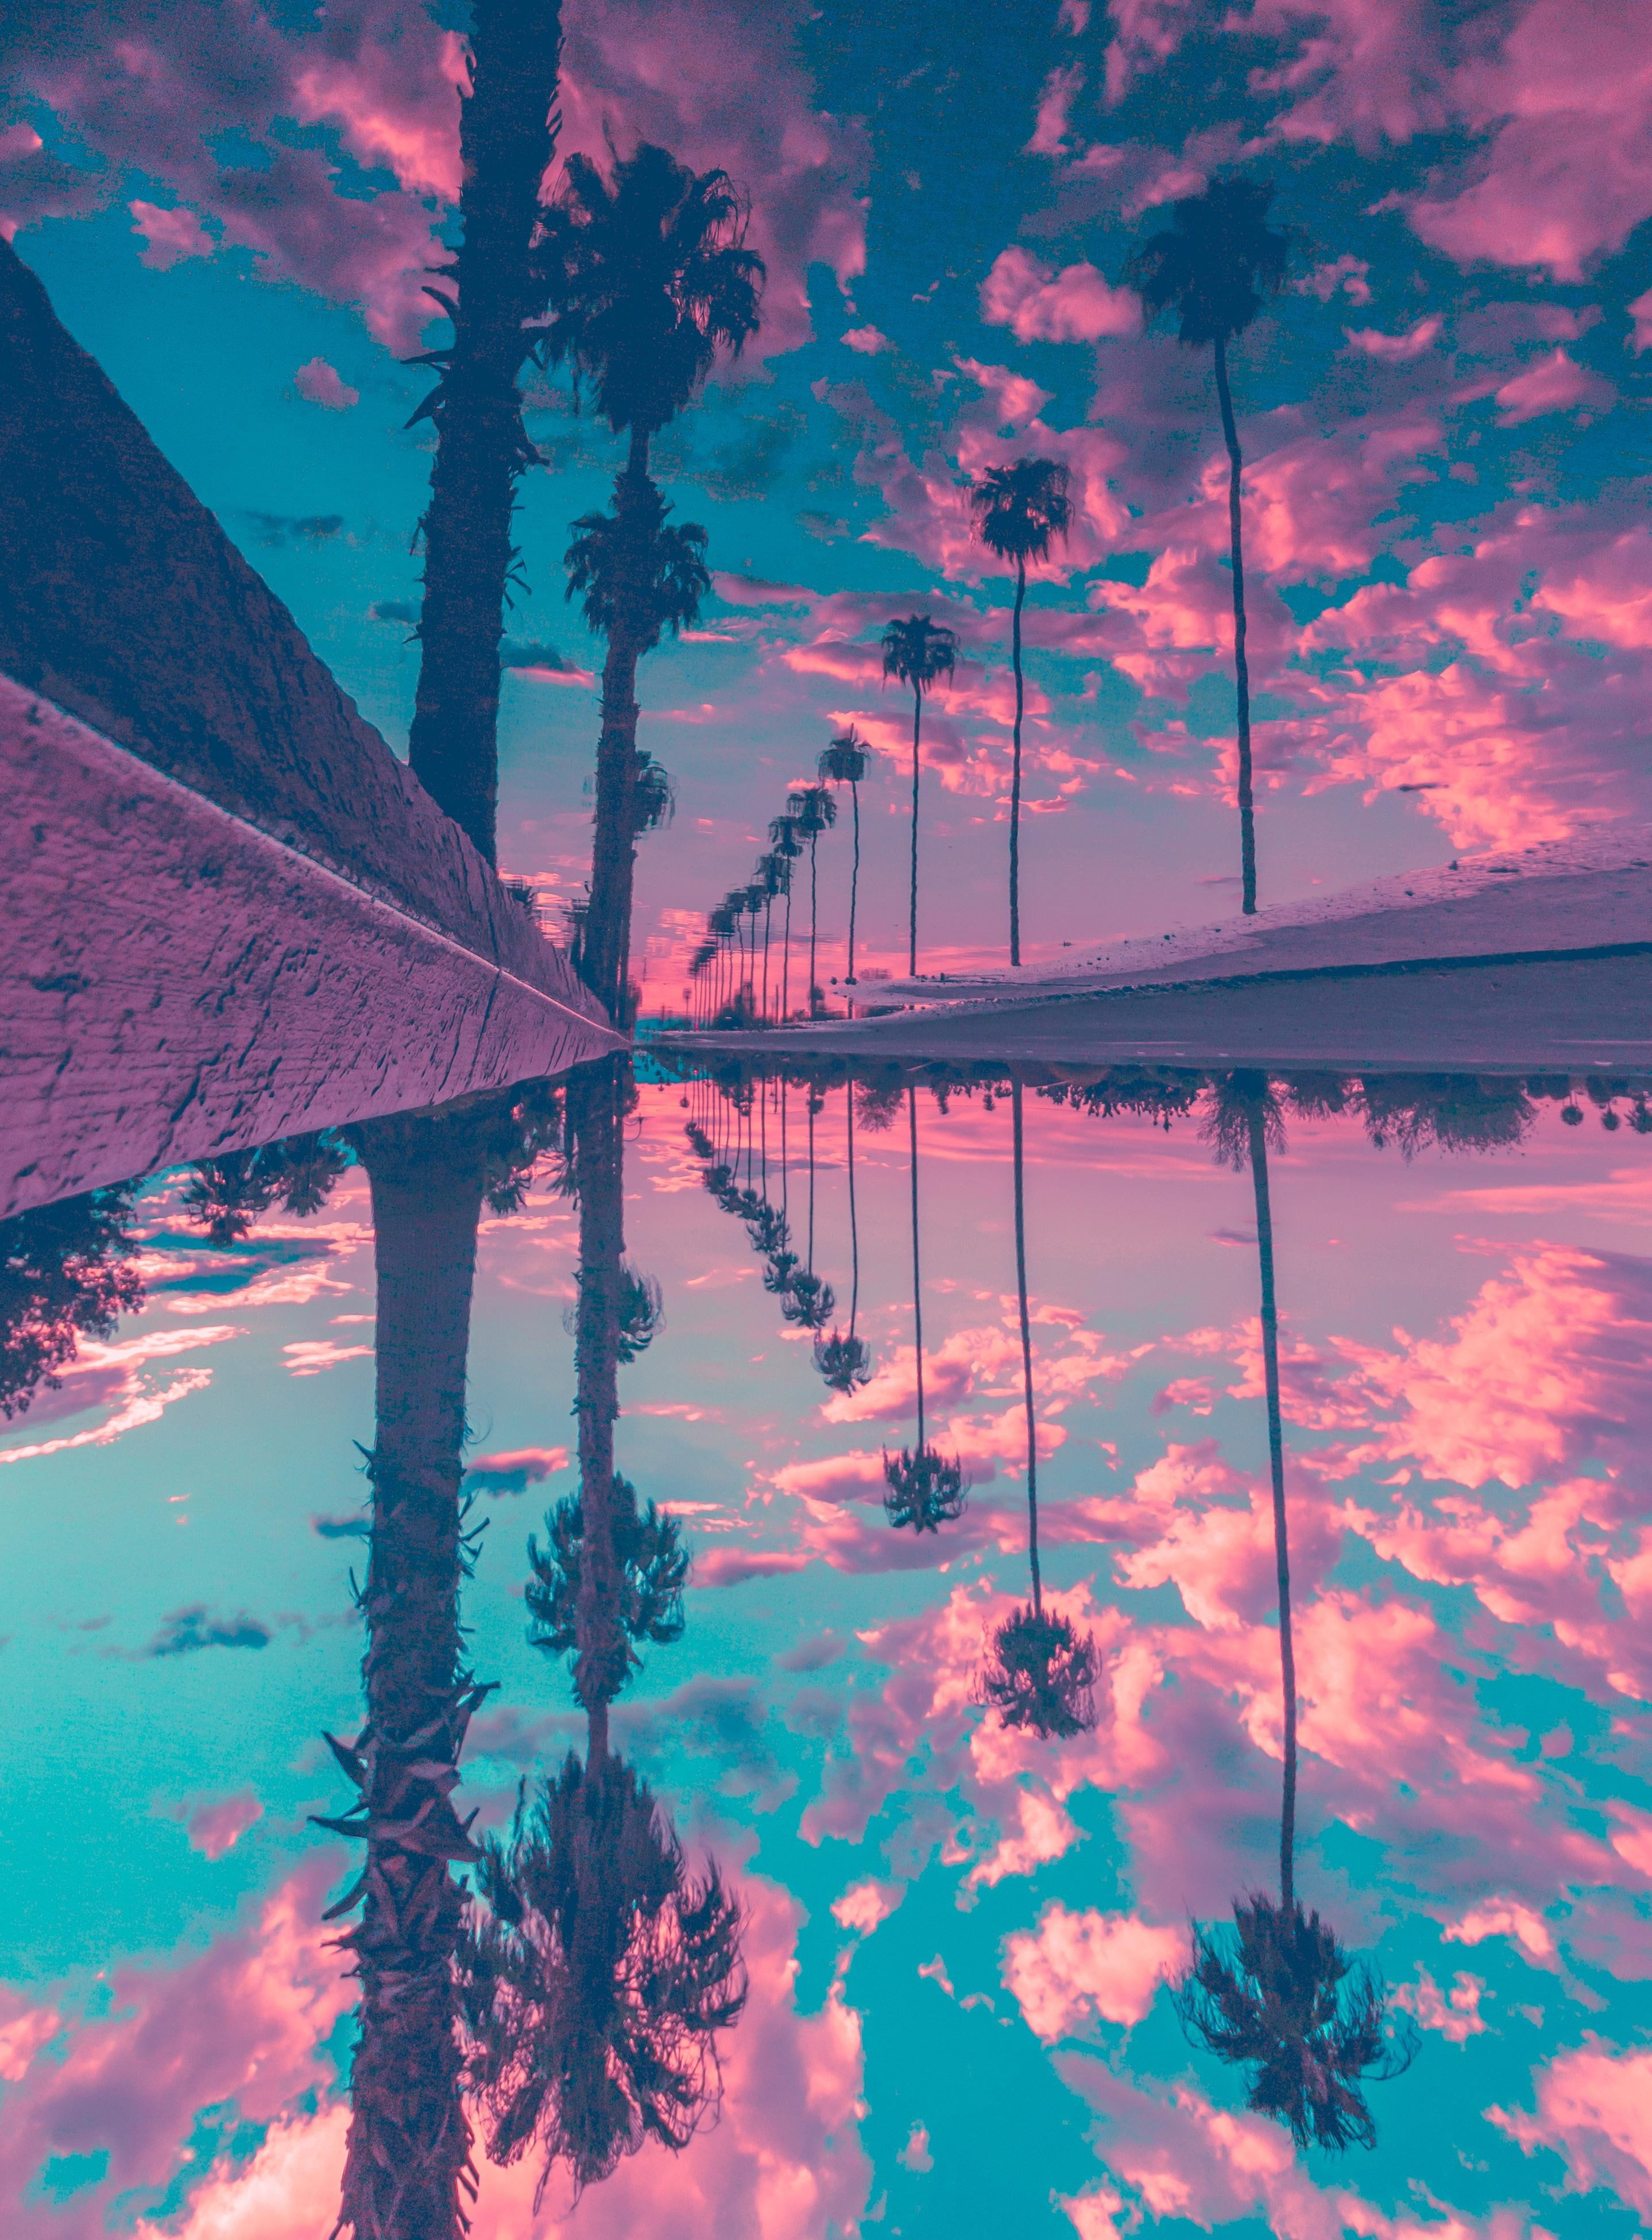 Sunset Palm Trees Sky Water Reflection Colorful Portrait Display 4k Wallpaper Hdwallpaper Des Blue Aesthetic Pastel Sky Aesthetic Aesthetic Wallpapers